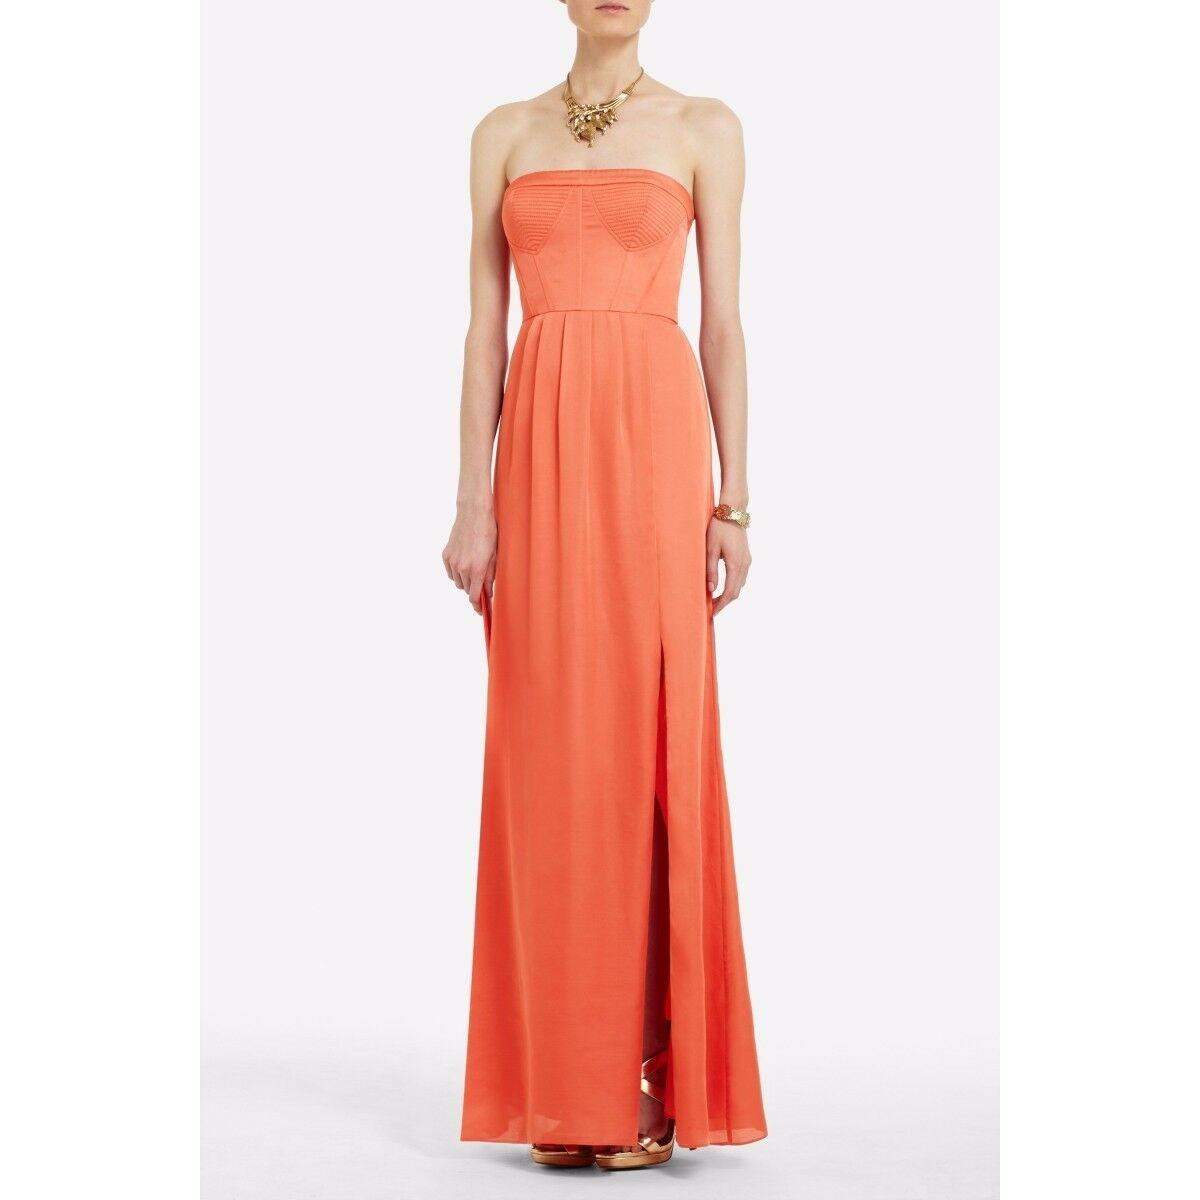 BCBGMaxAzria Pink orange Coral Enyas Strapless Slit Dress Size 2